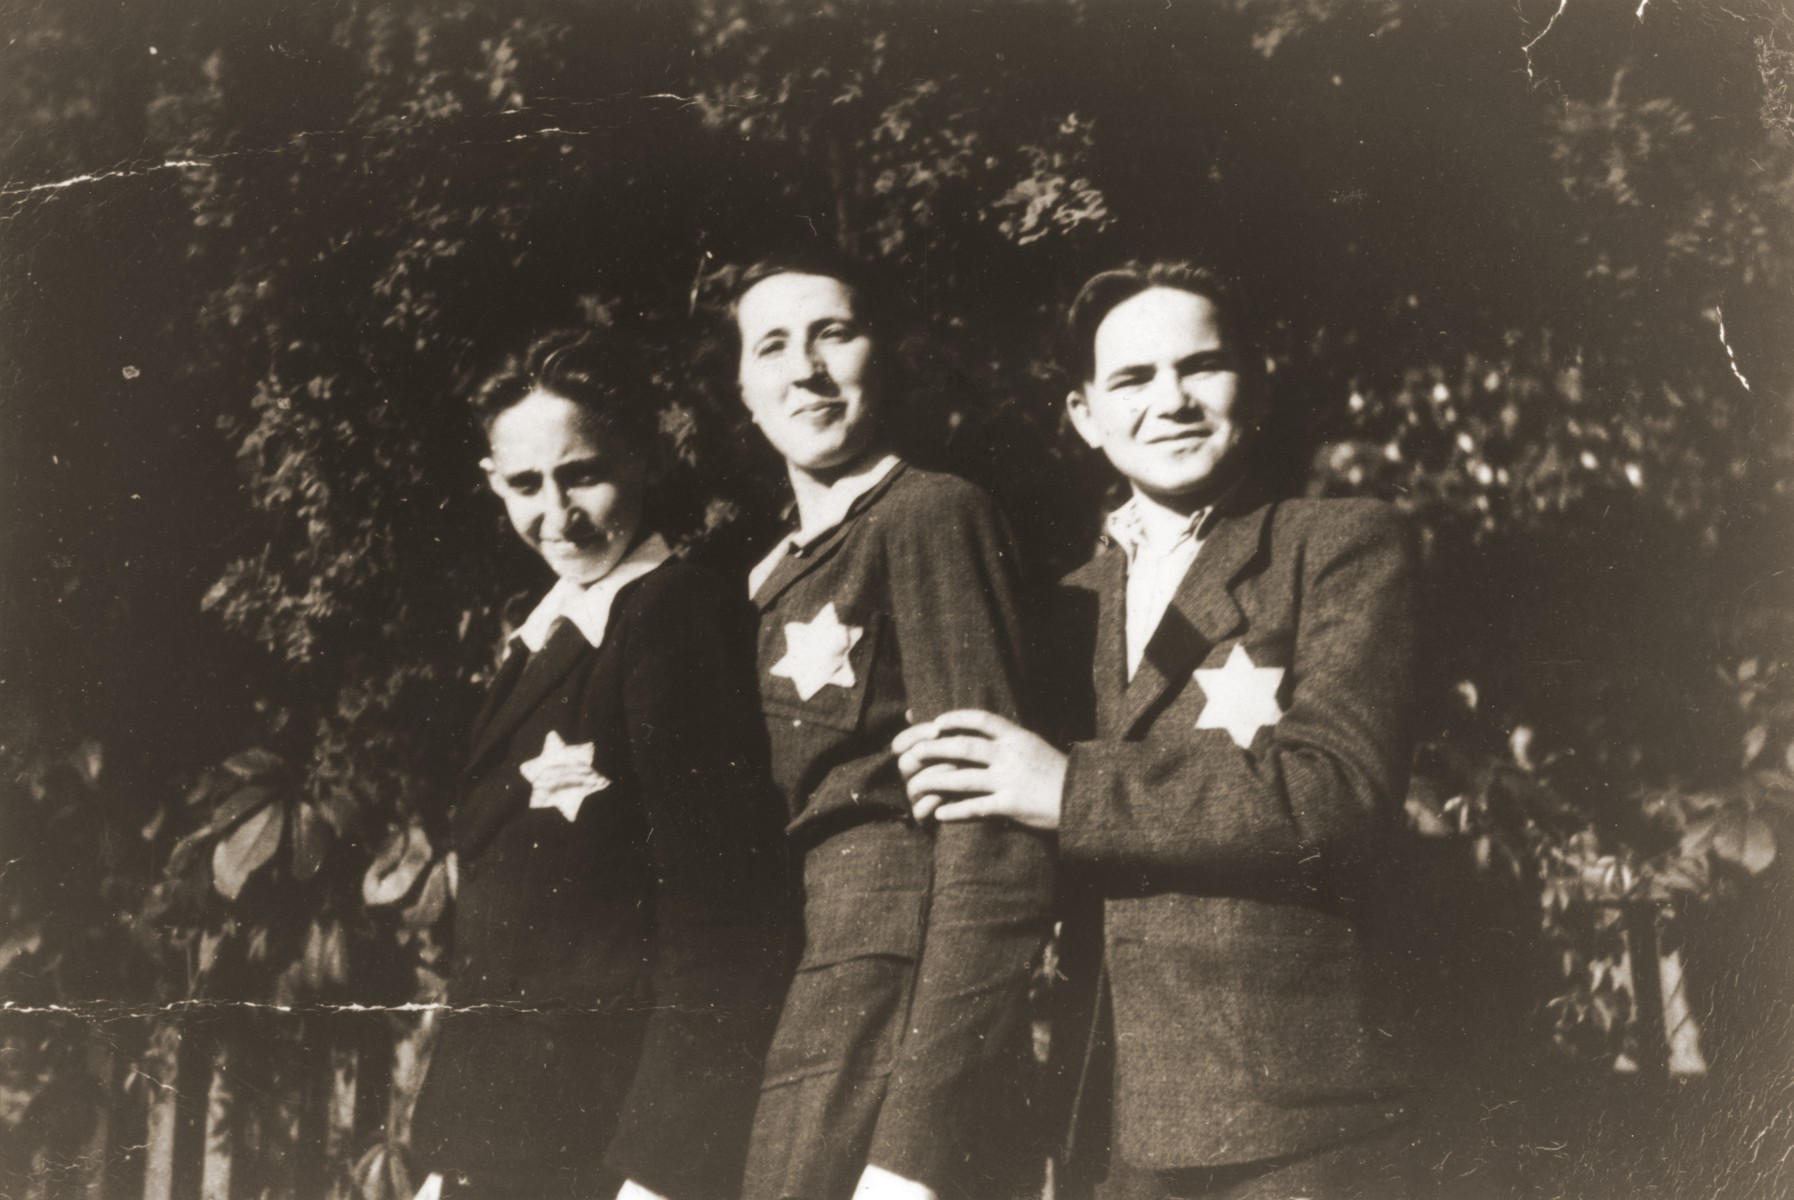 Maylech Blobstein (right) poses with his cousins, Chaya and Hershi Blobstein, wearing the yellow star.  Hershi was later killed in an Allied bombing raid on Hungary.